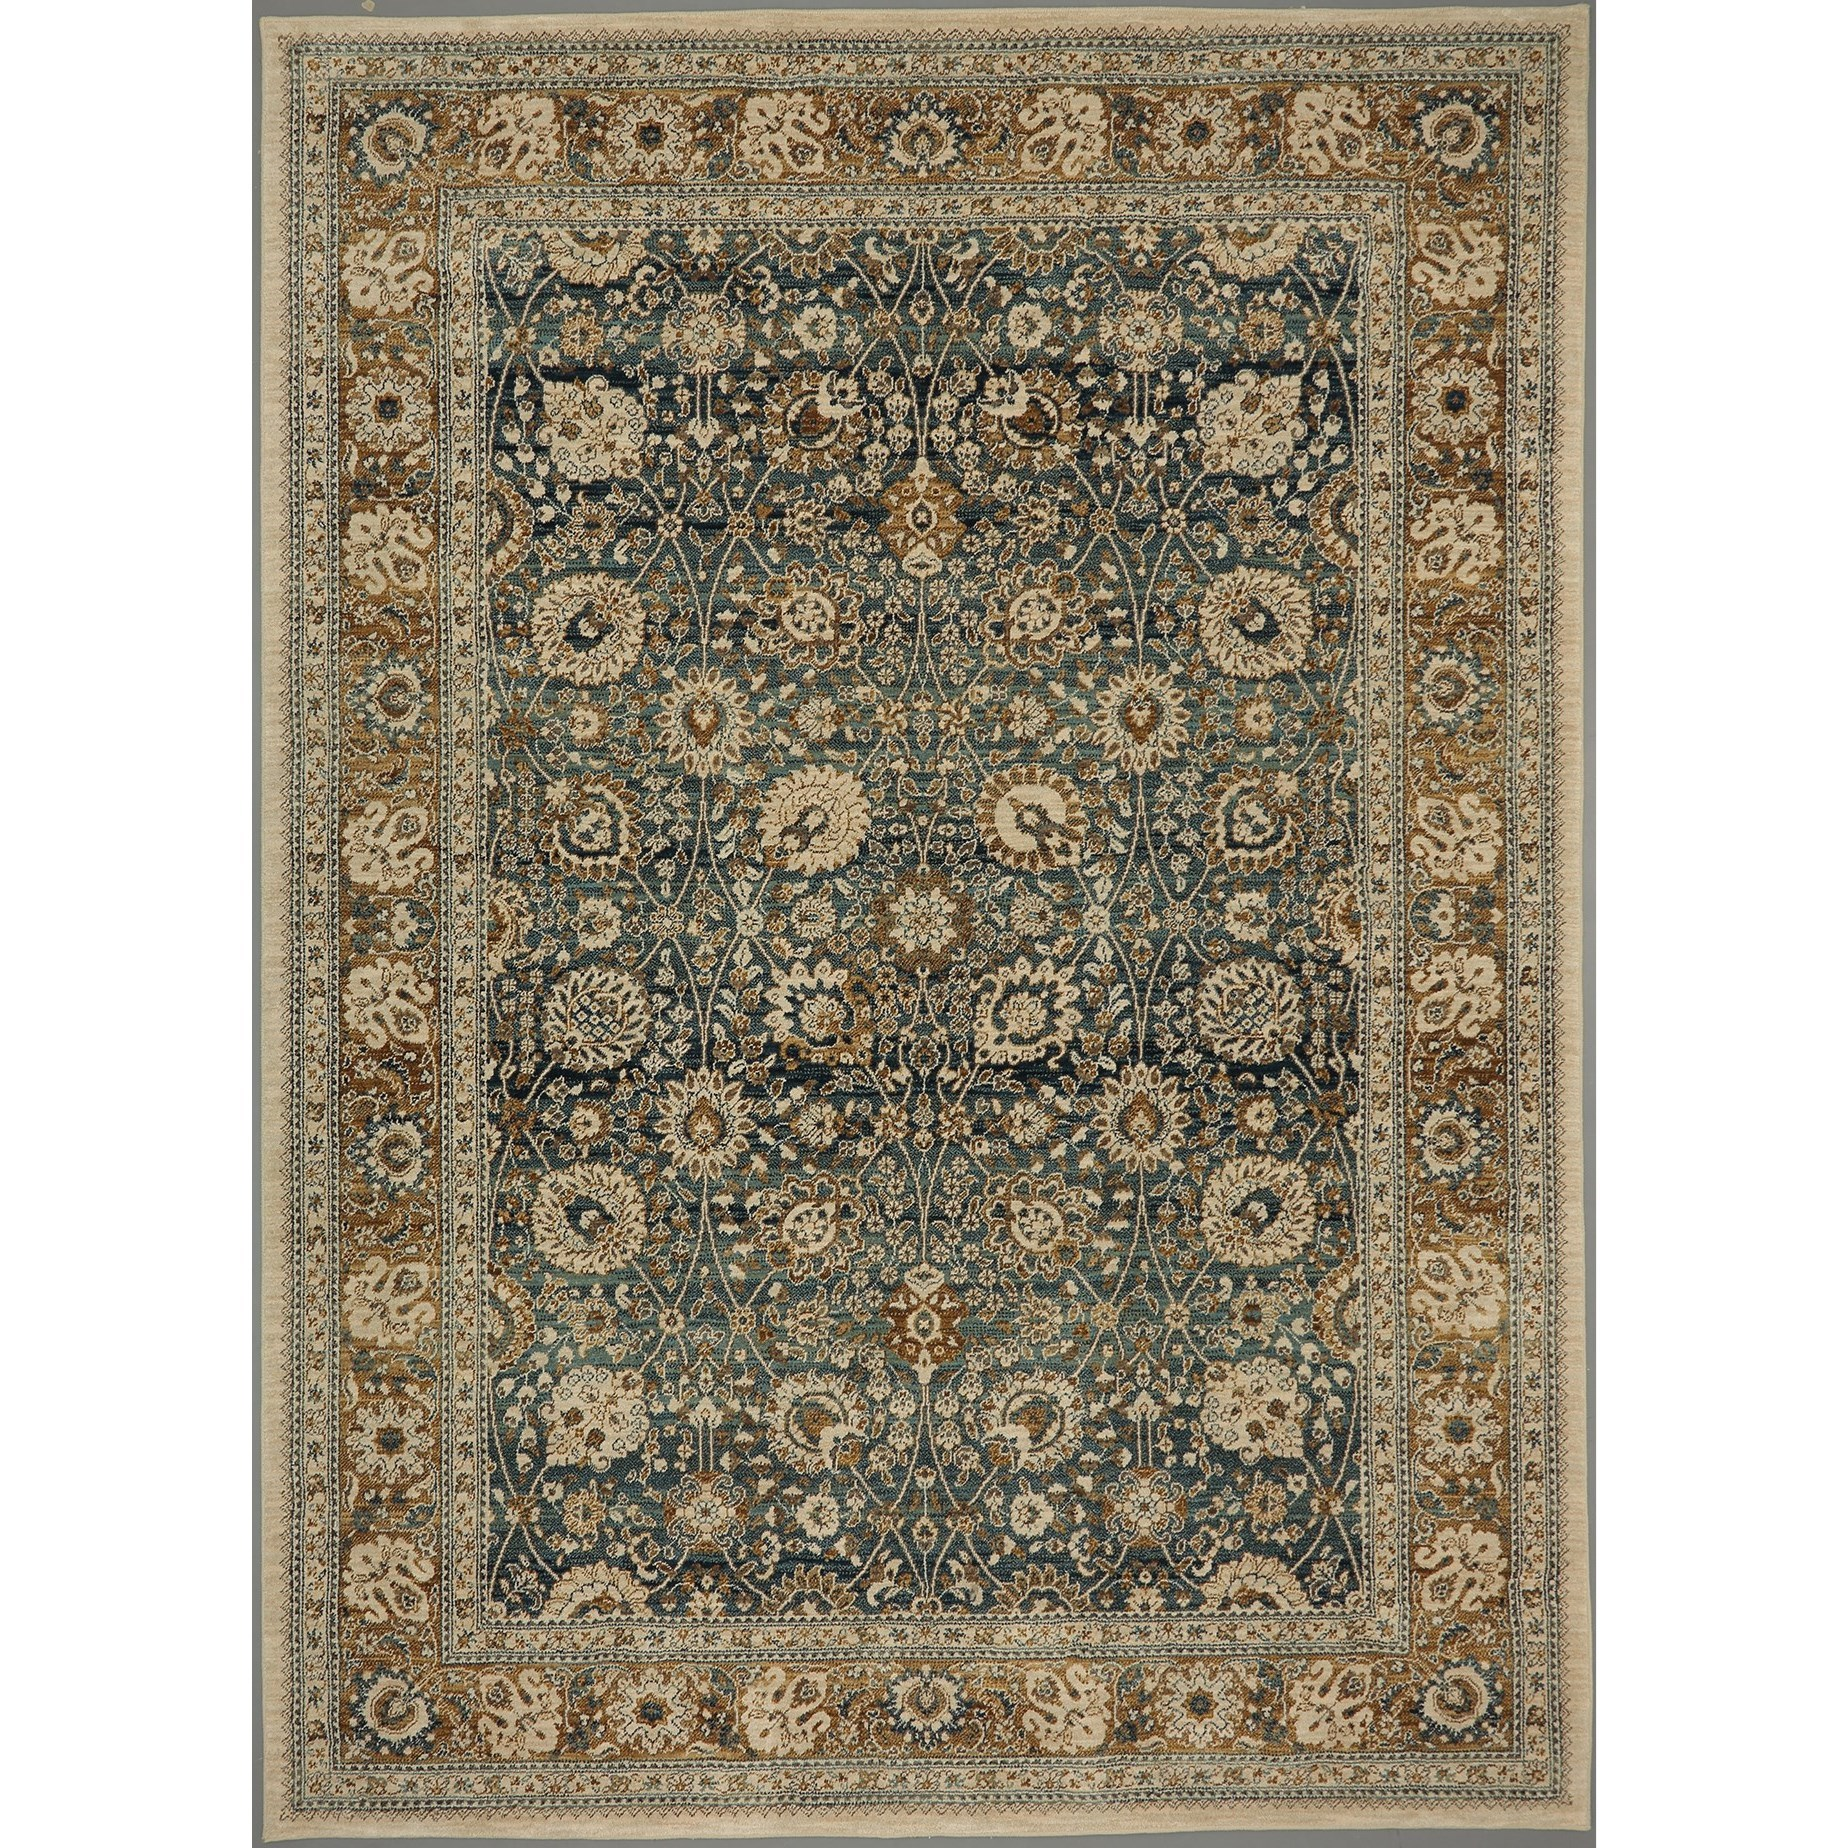 Spice Market 8'x11' Rectangle Ornamental Area Rug by Karastan Rugs at Darvin Furniture